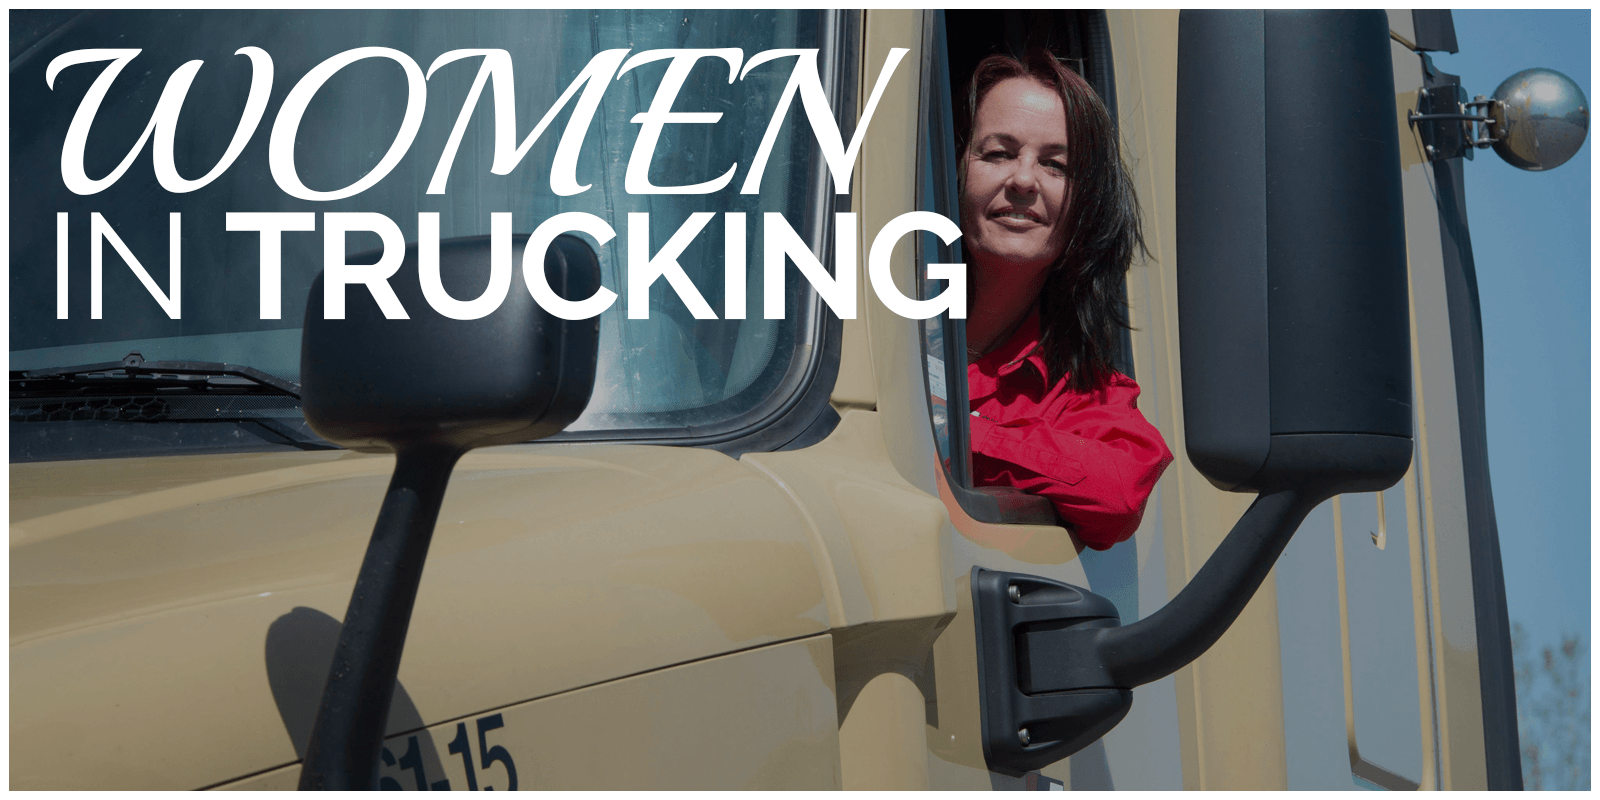 Women in semi-cab with caption, Women in Trucking